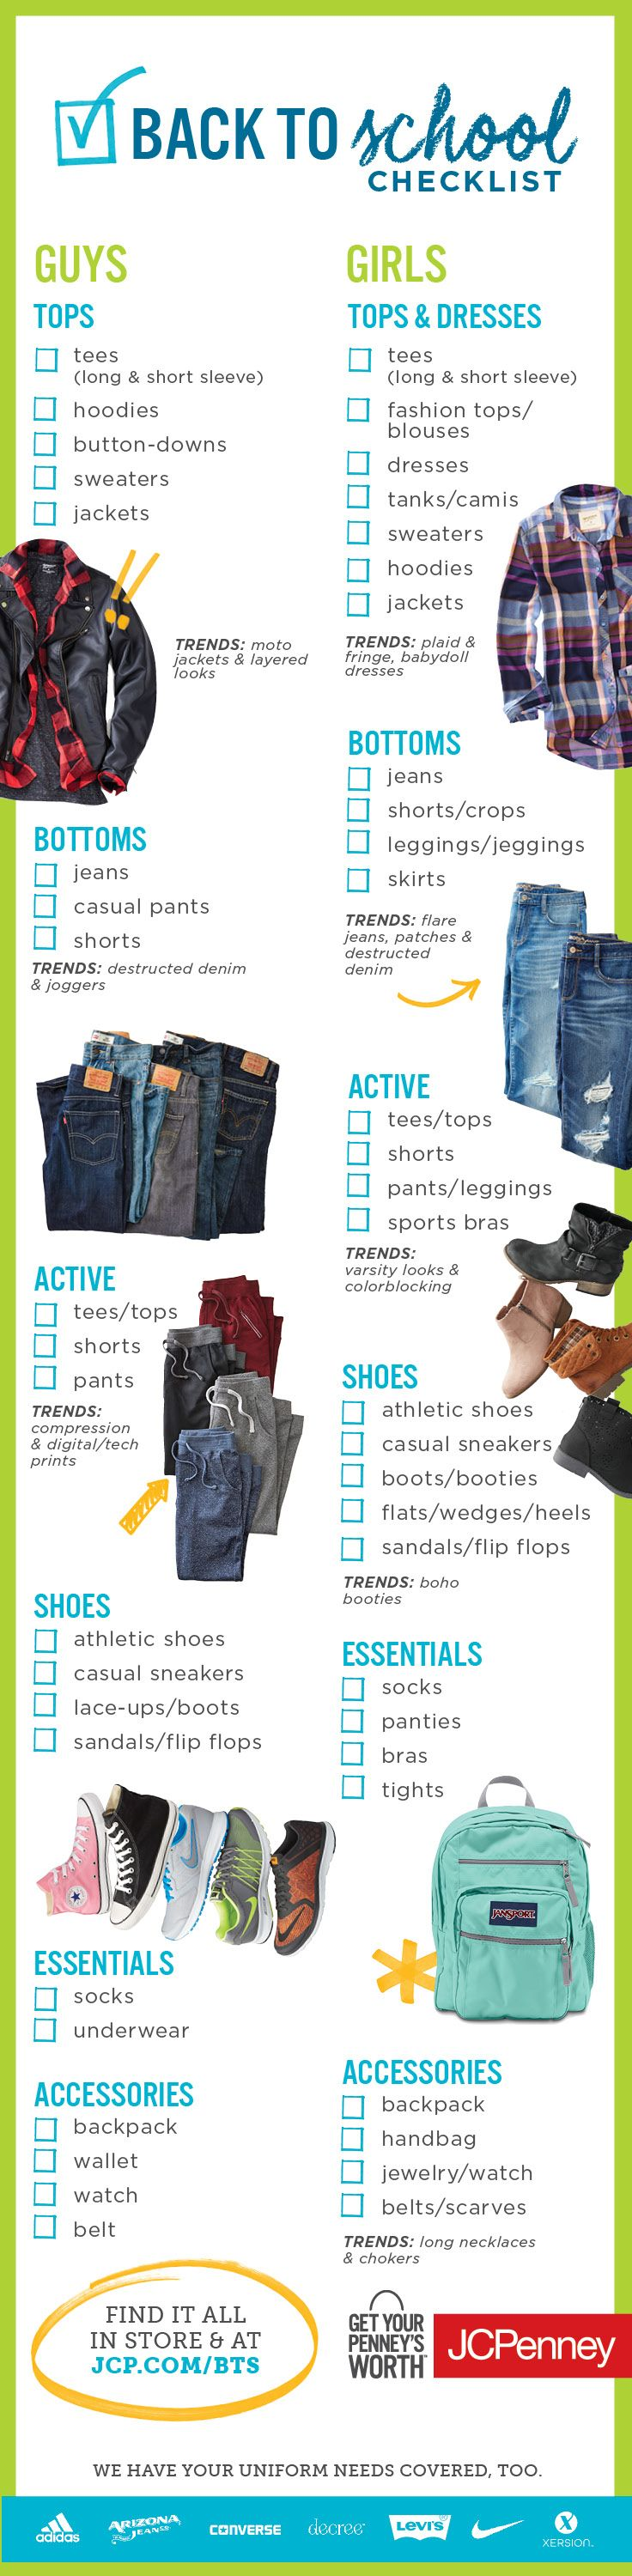 Find everything you need for Back-to-School  at JCPenney! We're talking jeans, shoes, backpacks, belts, shorts, uniforms and so much more that is so you and so worth it. Click the image so shop the list!